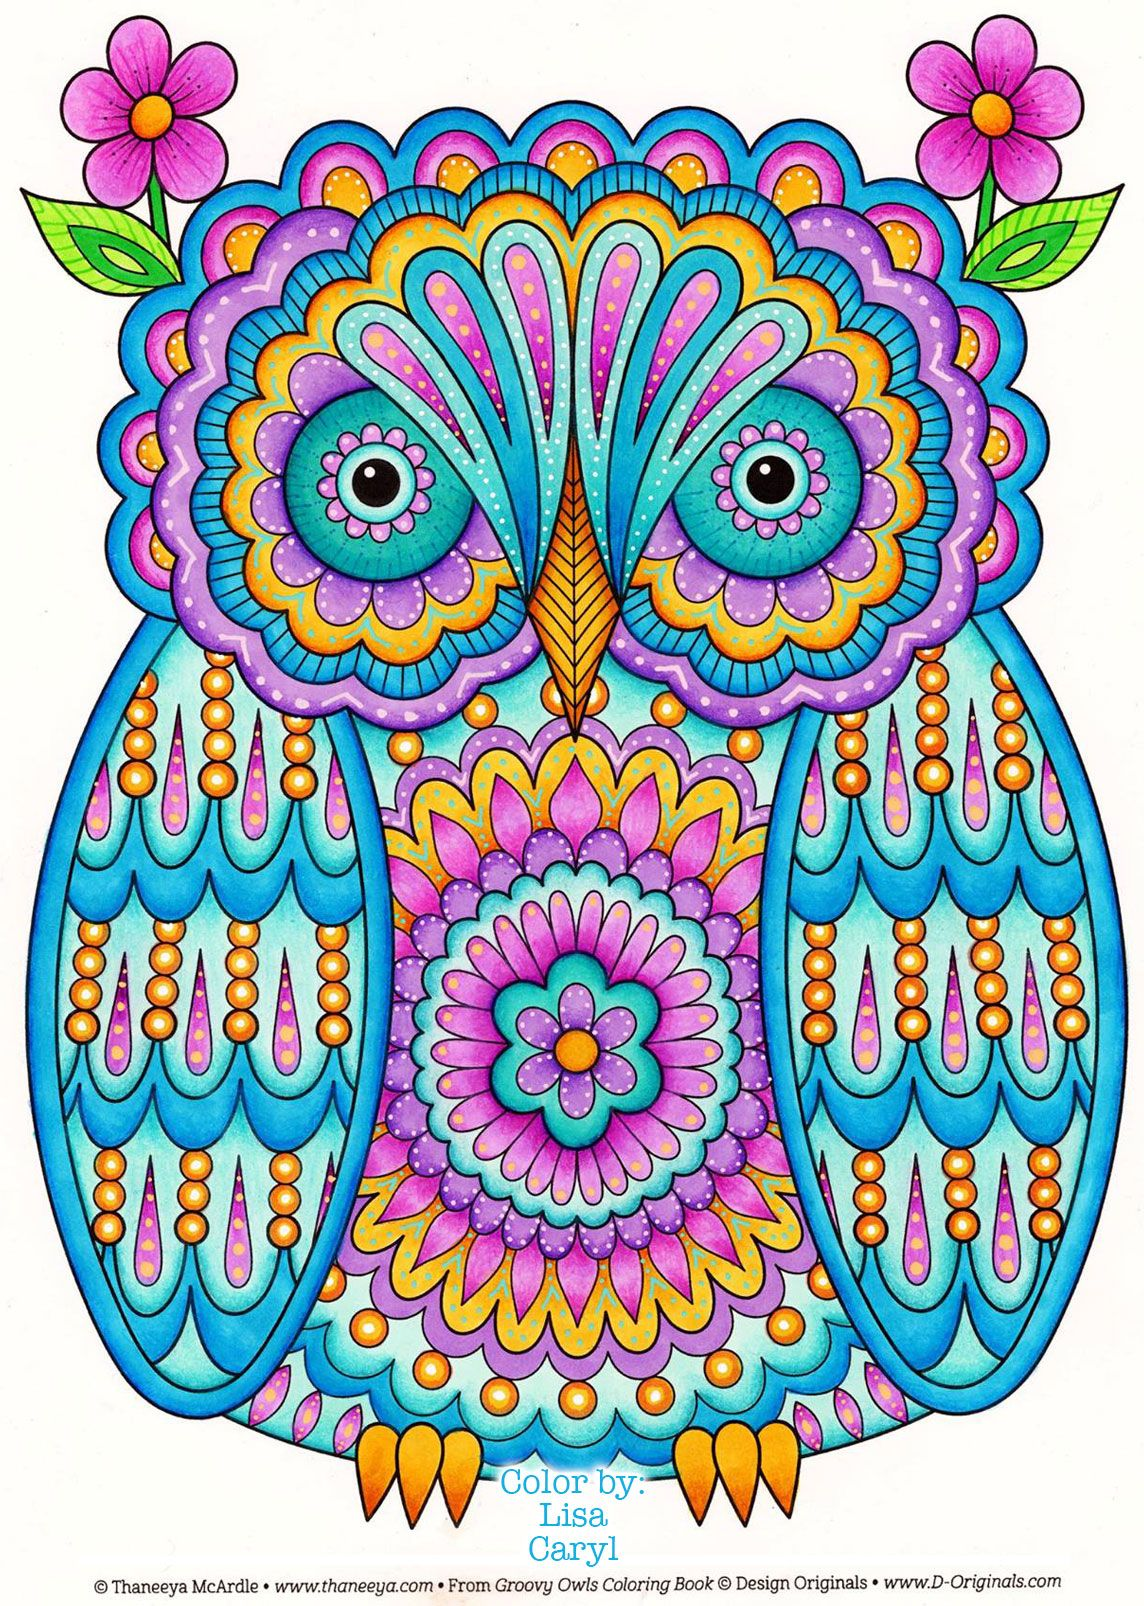 Owl Coloring Page From Thaneeya Mcardle S Groovy Owls Coloring Book Colored By Lisa Caryl Https Www Amazon C Owl Coloring Pages Coloring Books Owl Wallpaper